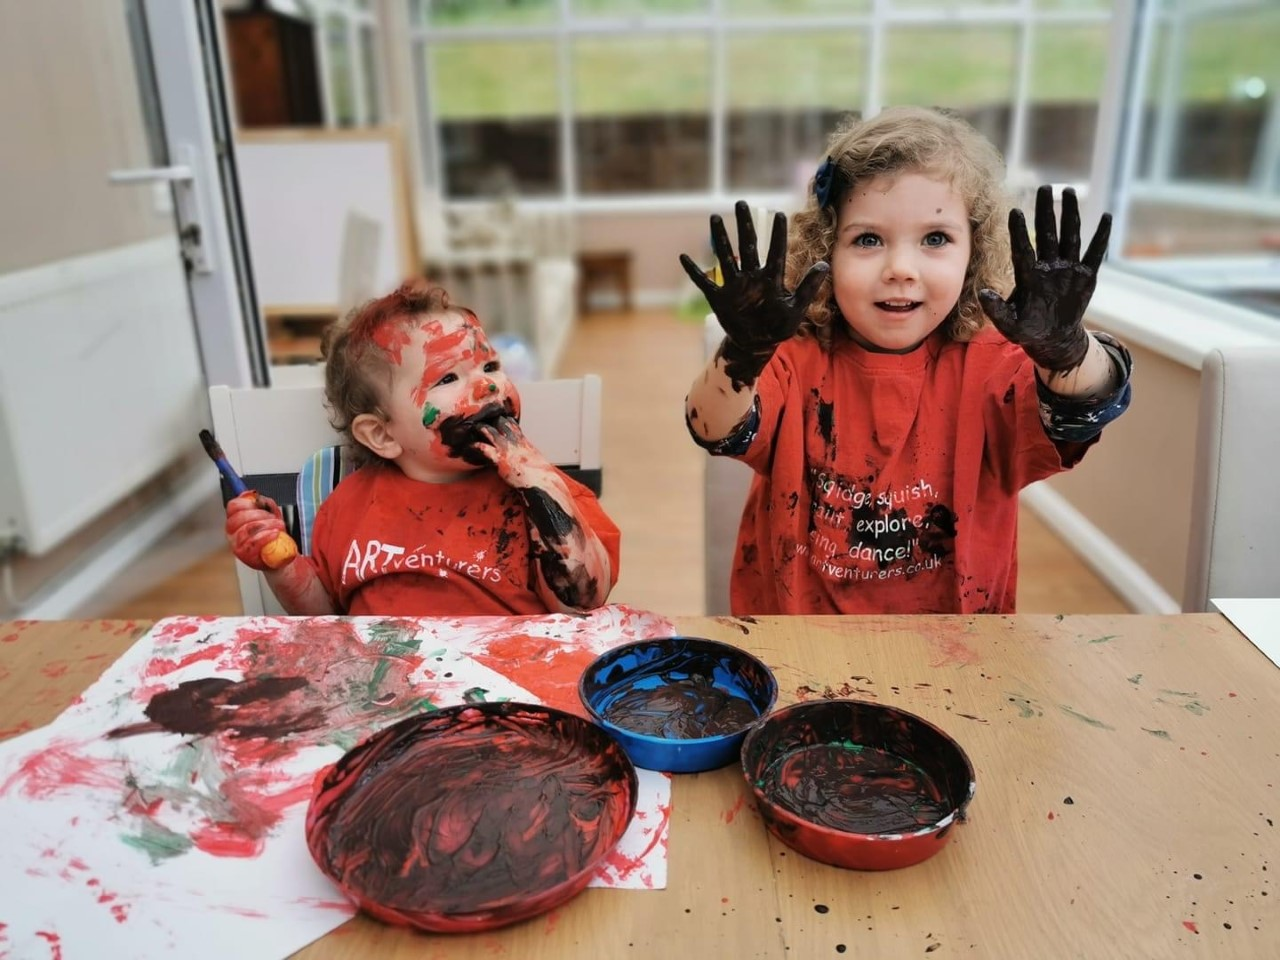 toddler and baby with paint on their hands and faces